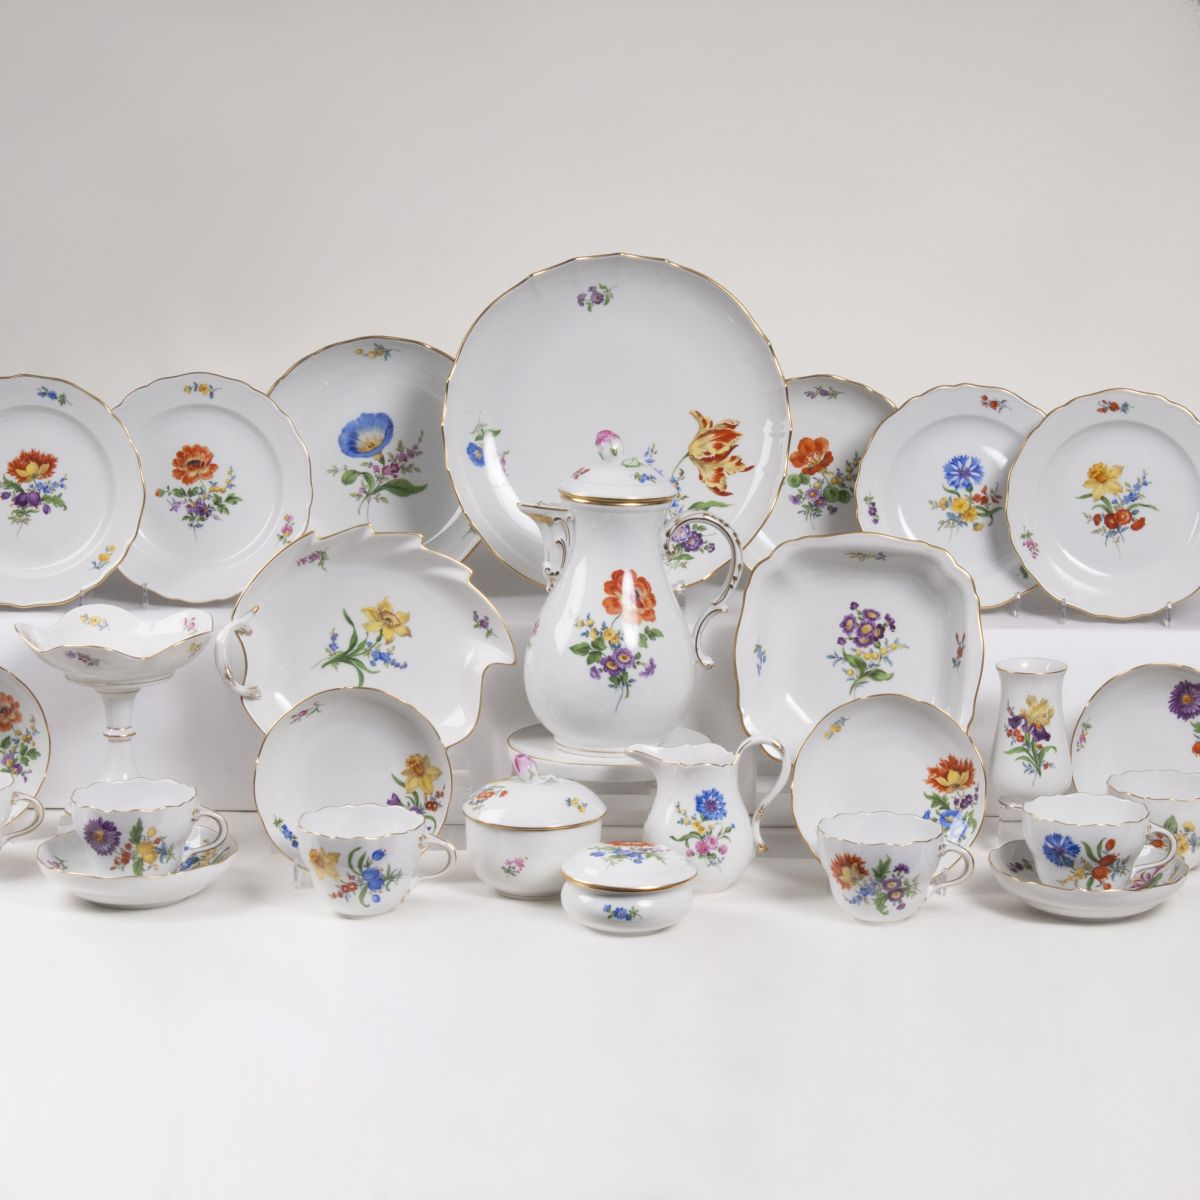 A Coffee Service 'Deutsche Blume' for 6 Persons